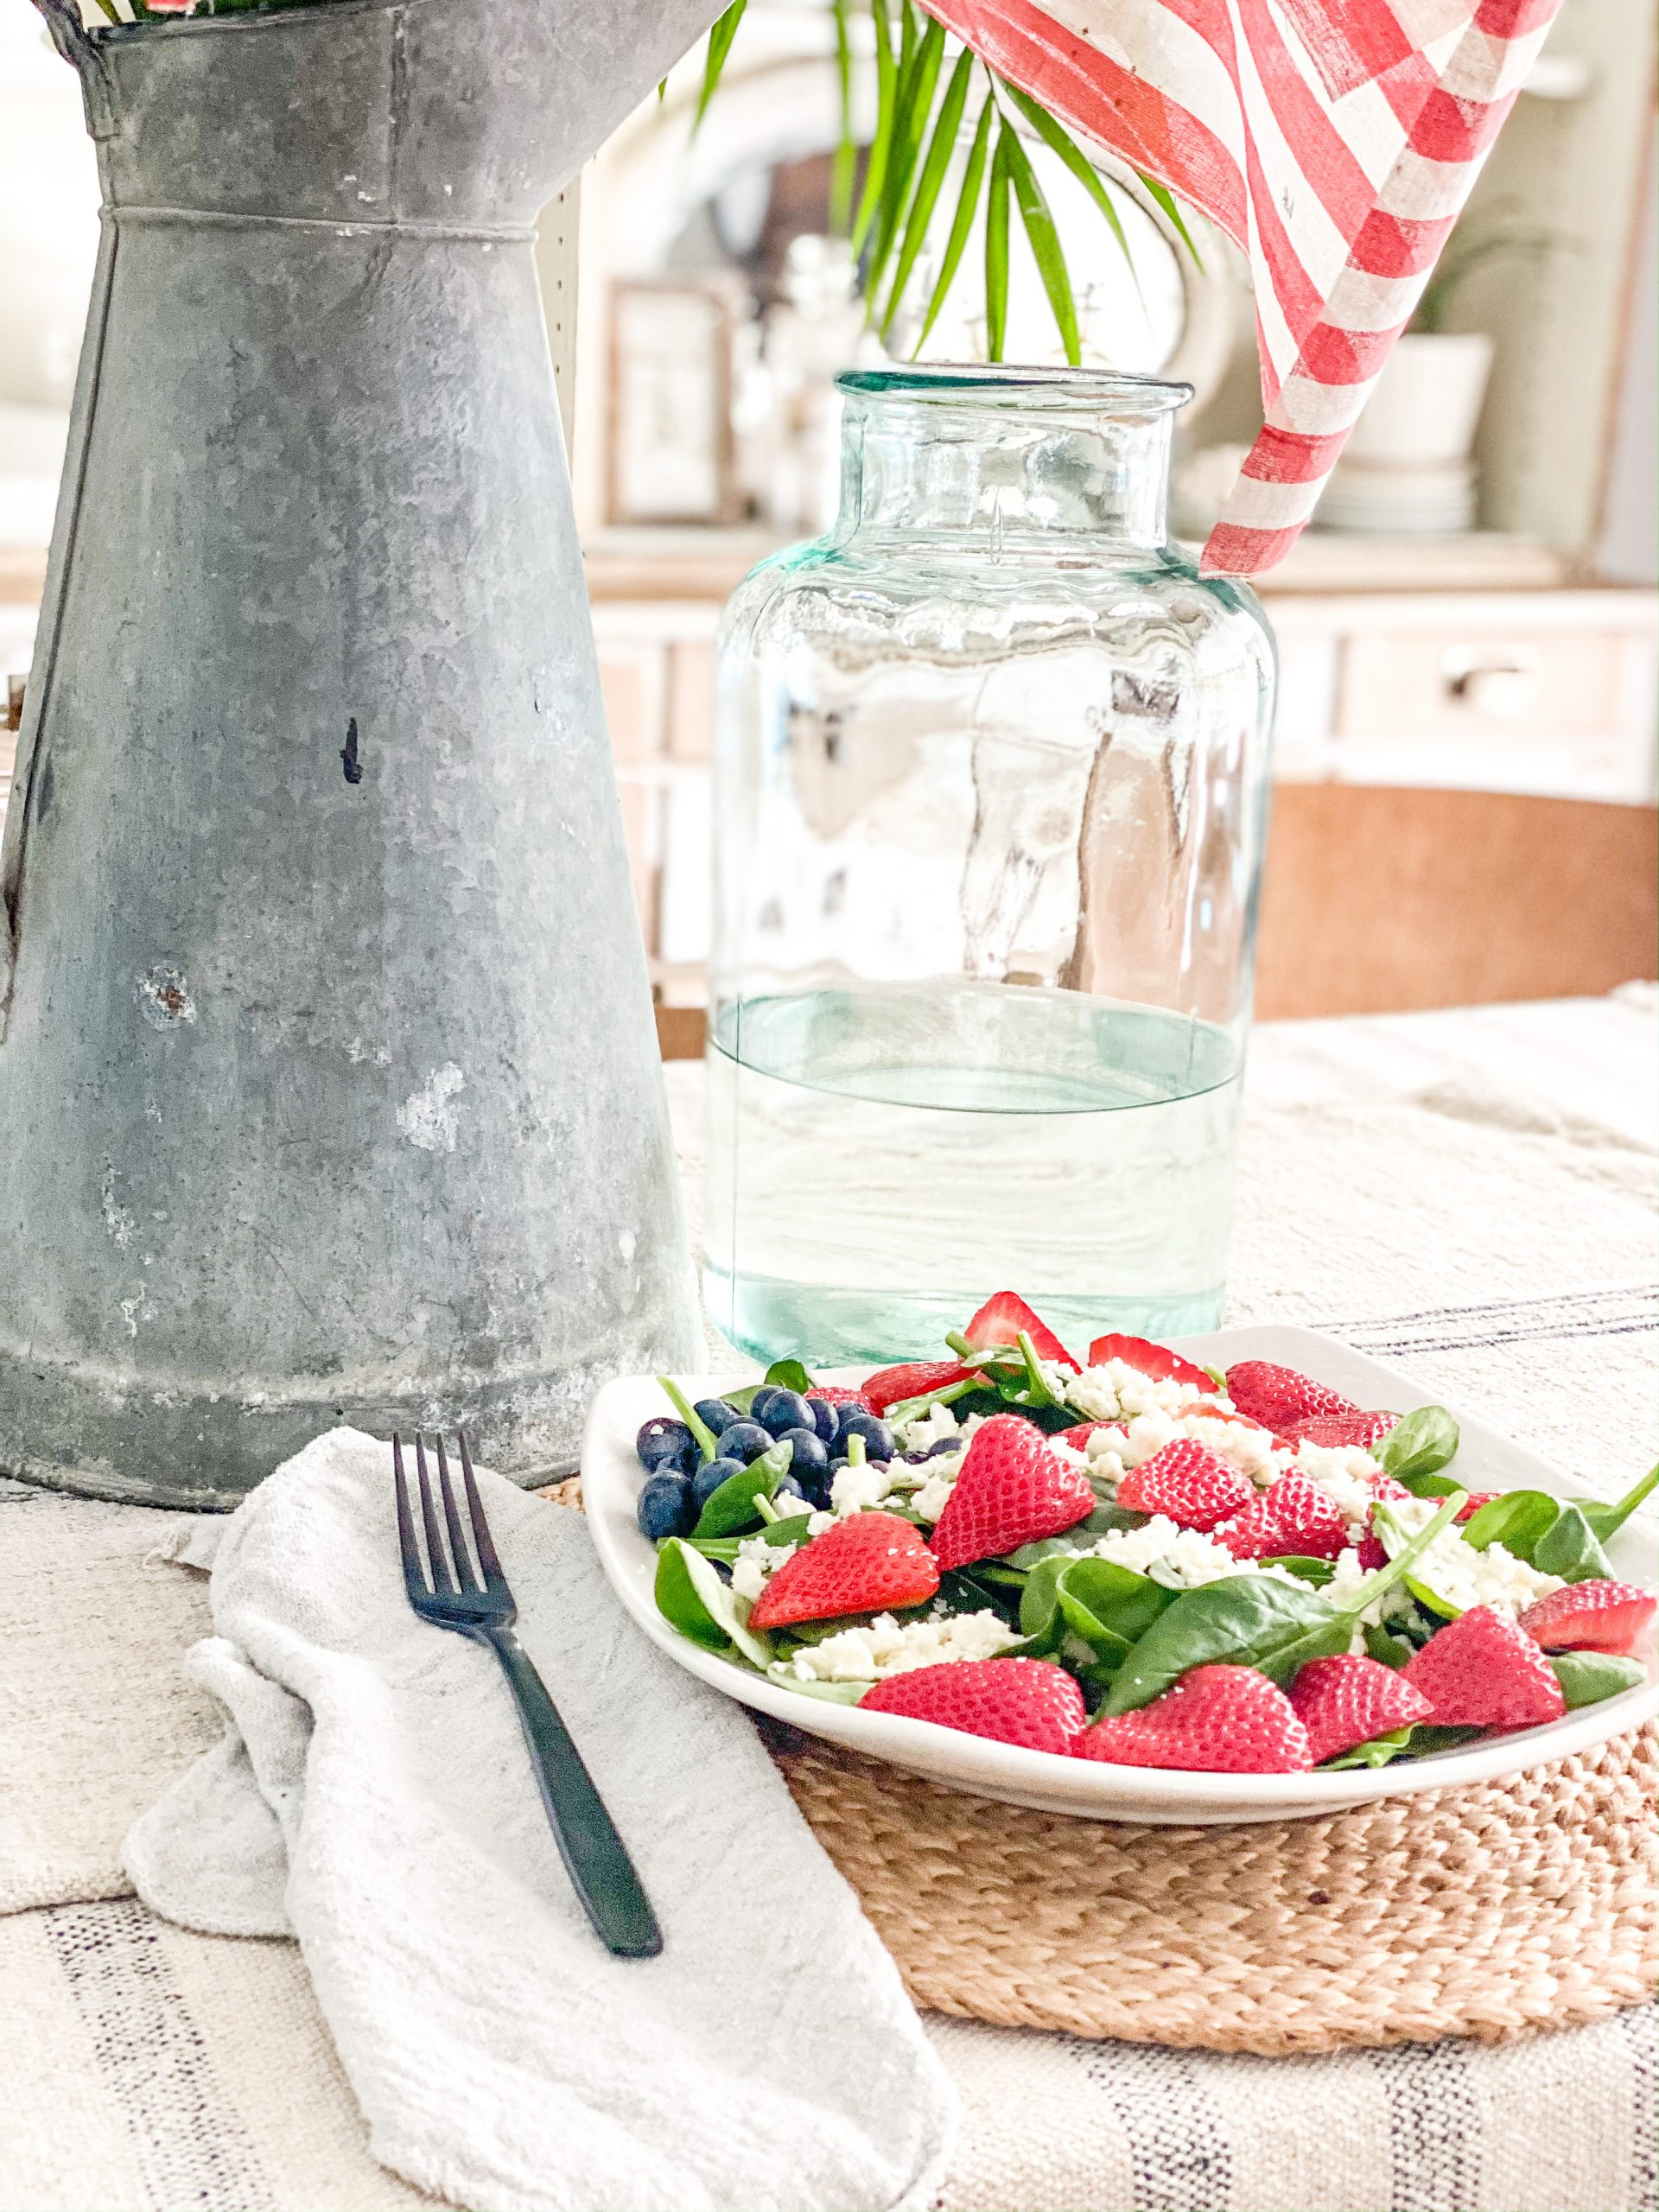 The Best Summer Salad Recipes for an Easy and Tasty Meal